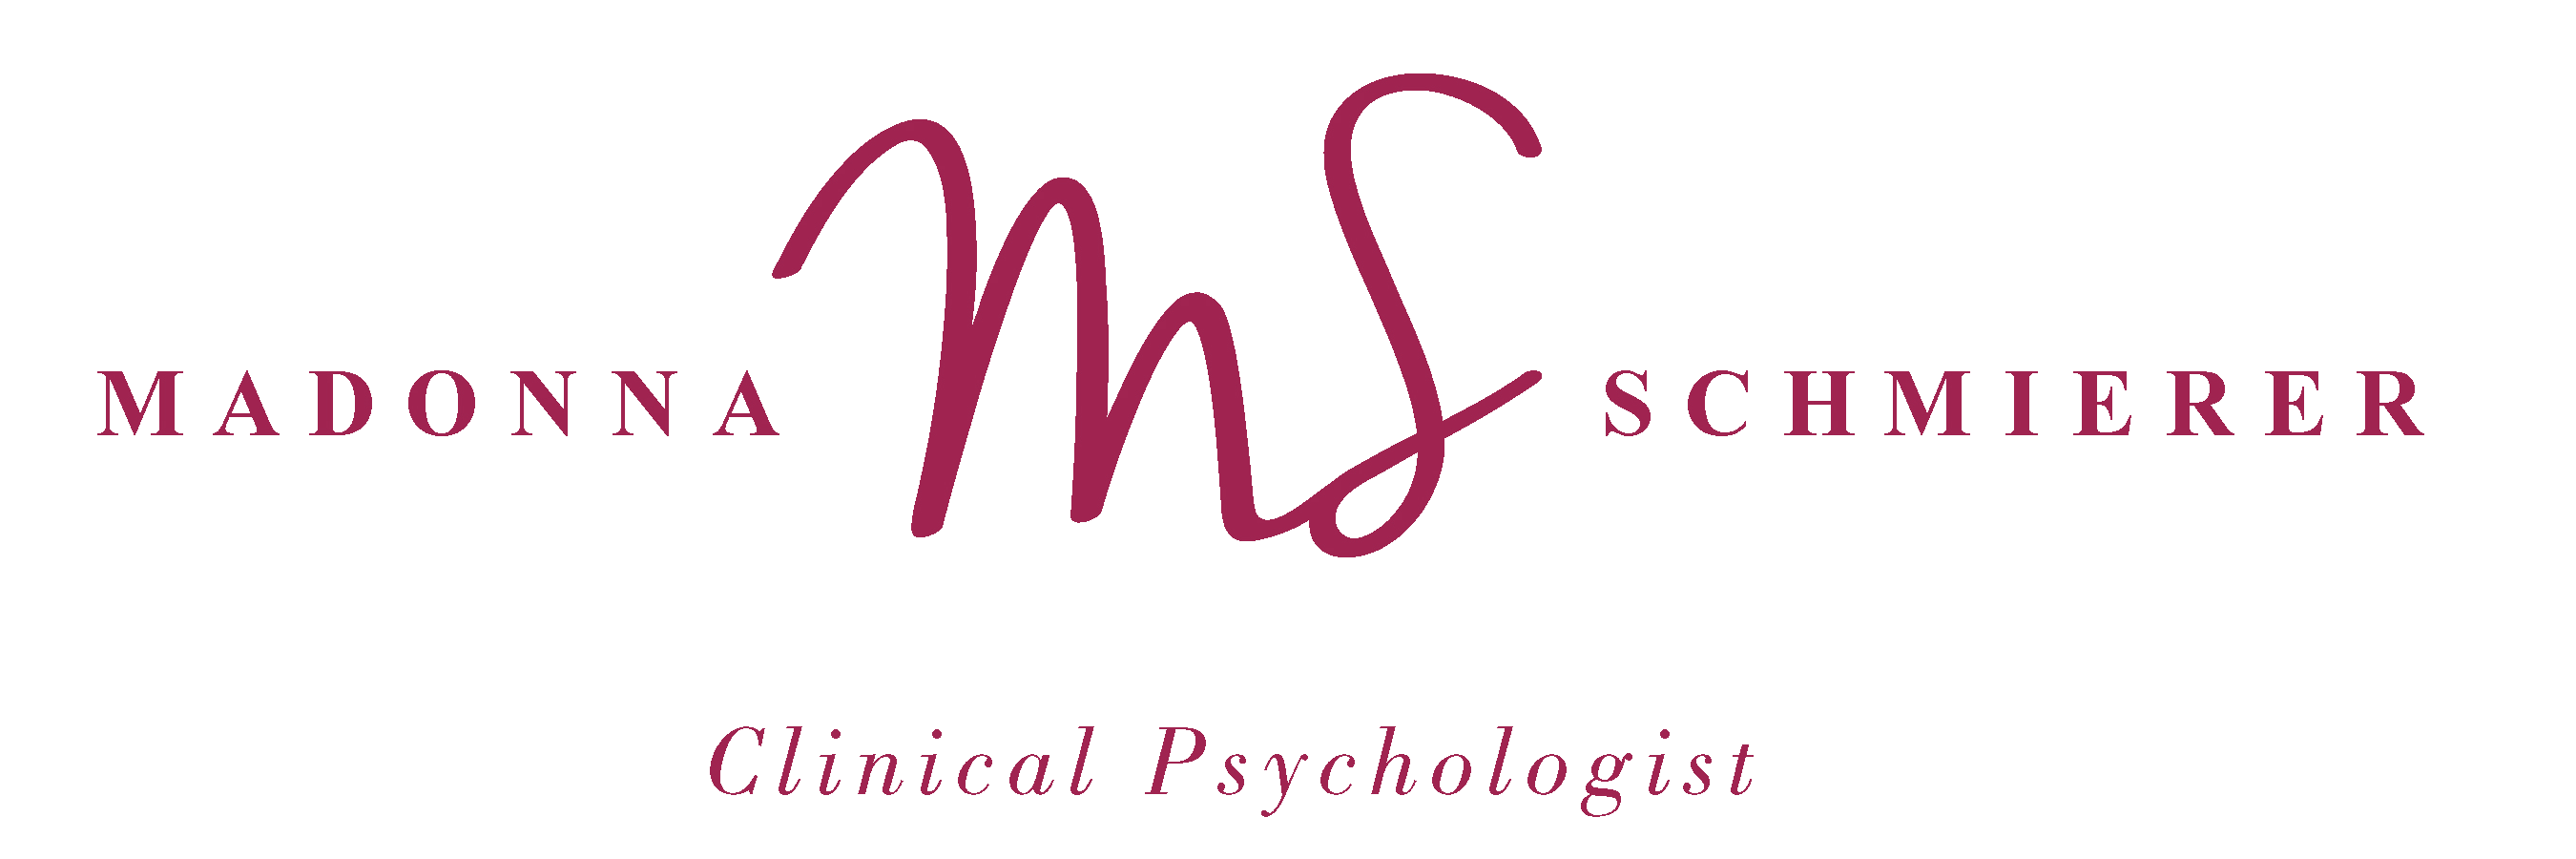 Madonna Schmierer Clinical Psychologist Logo